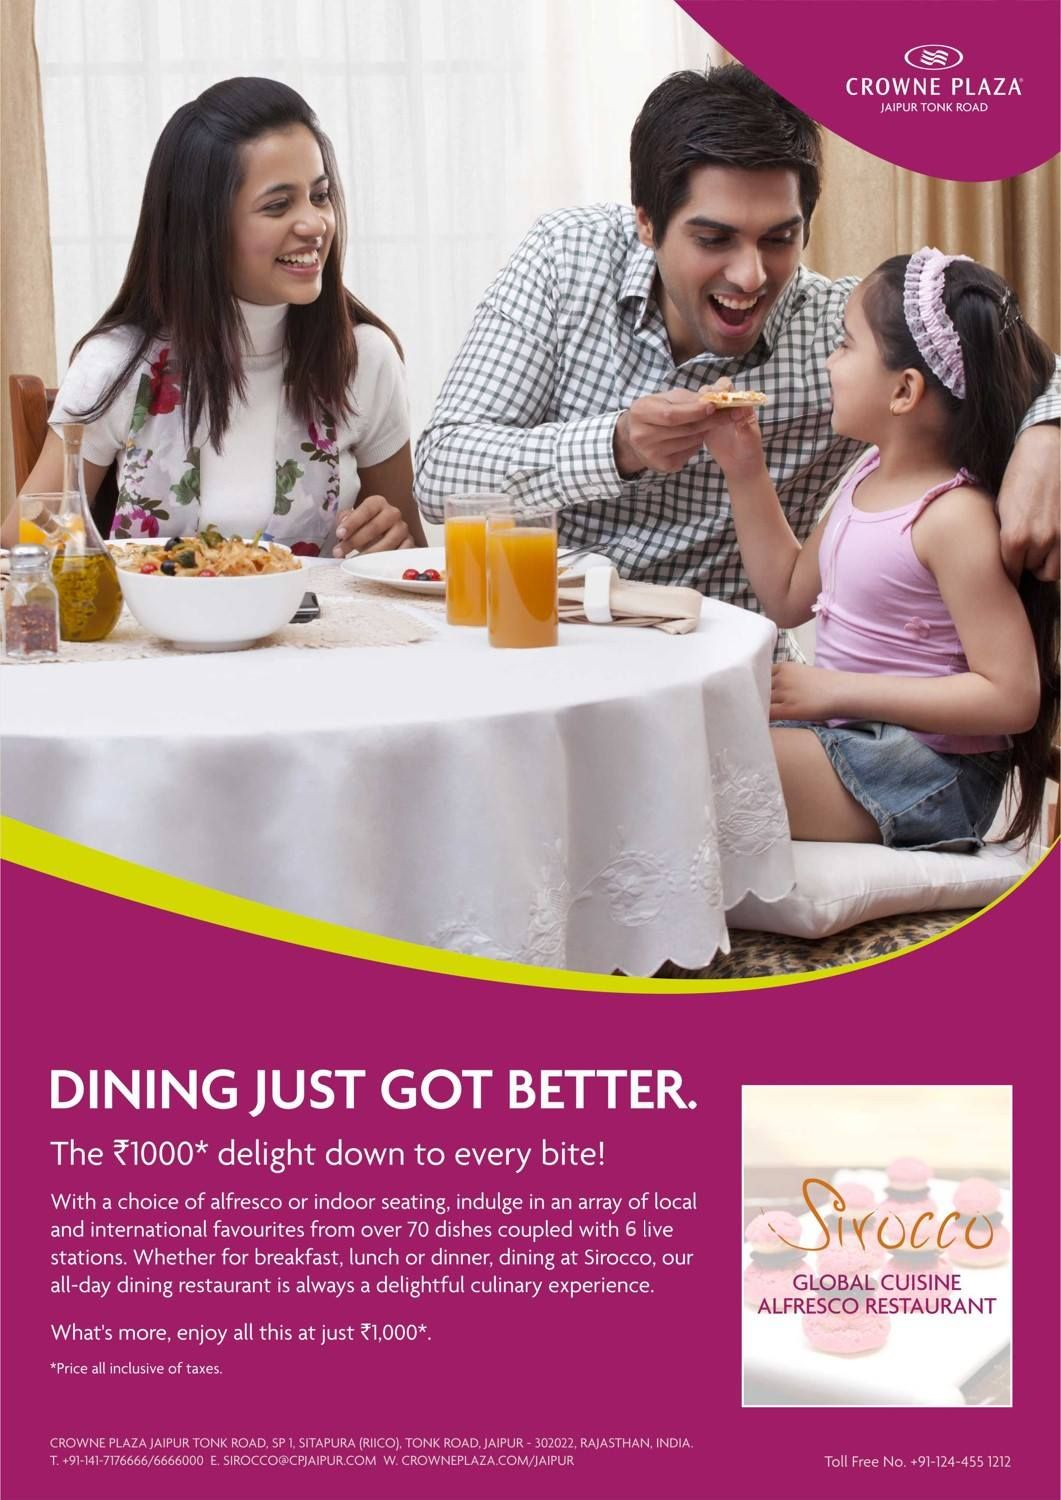 Elevate your dining experience. Come dine at #Sirocco and savor cuisines from all over the world at 1000* INR!